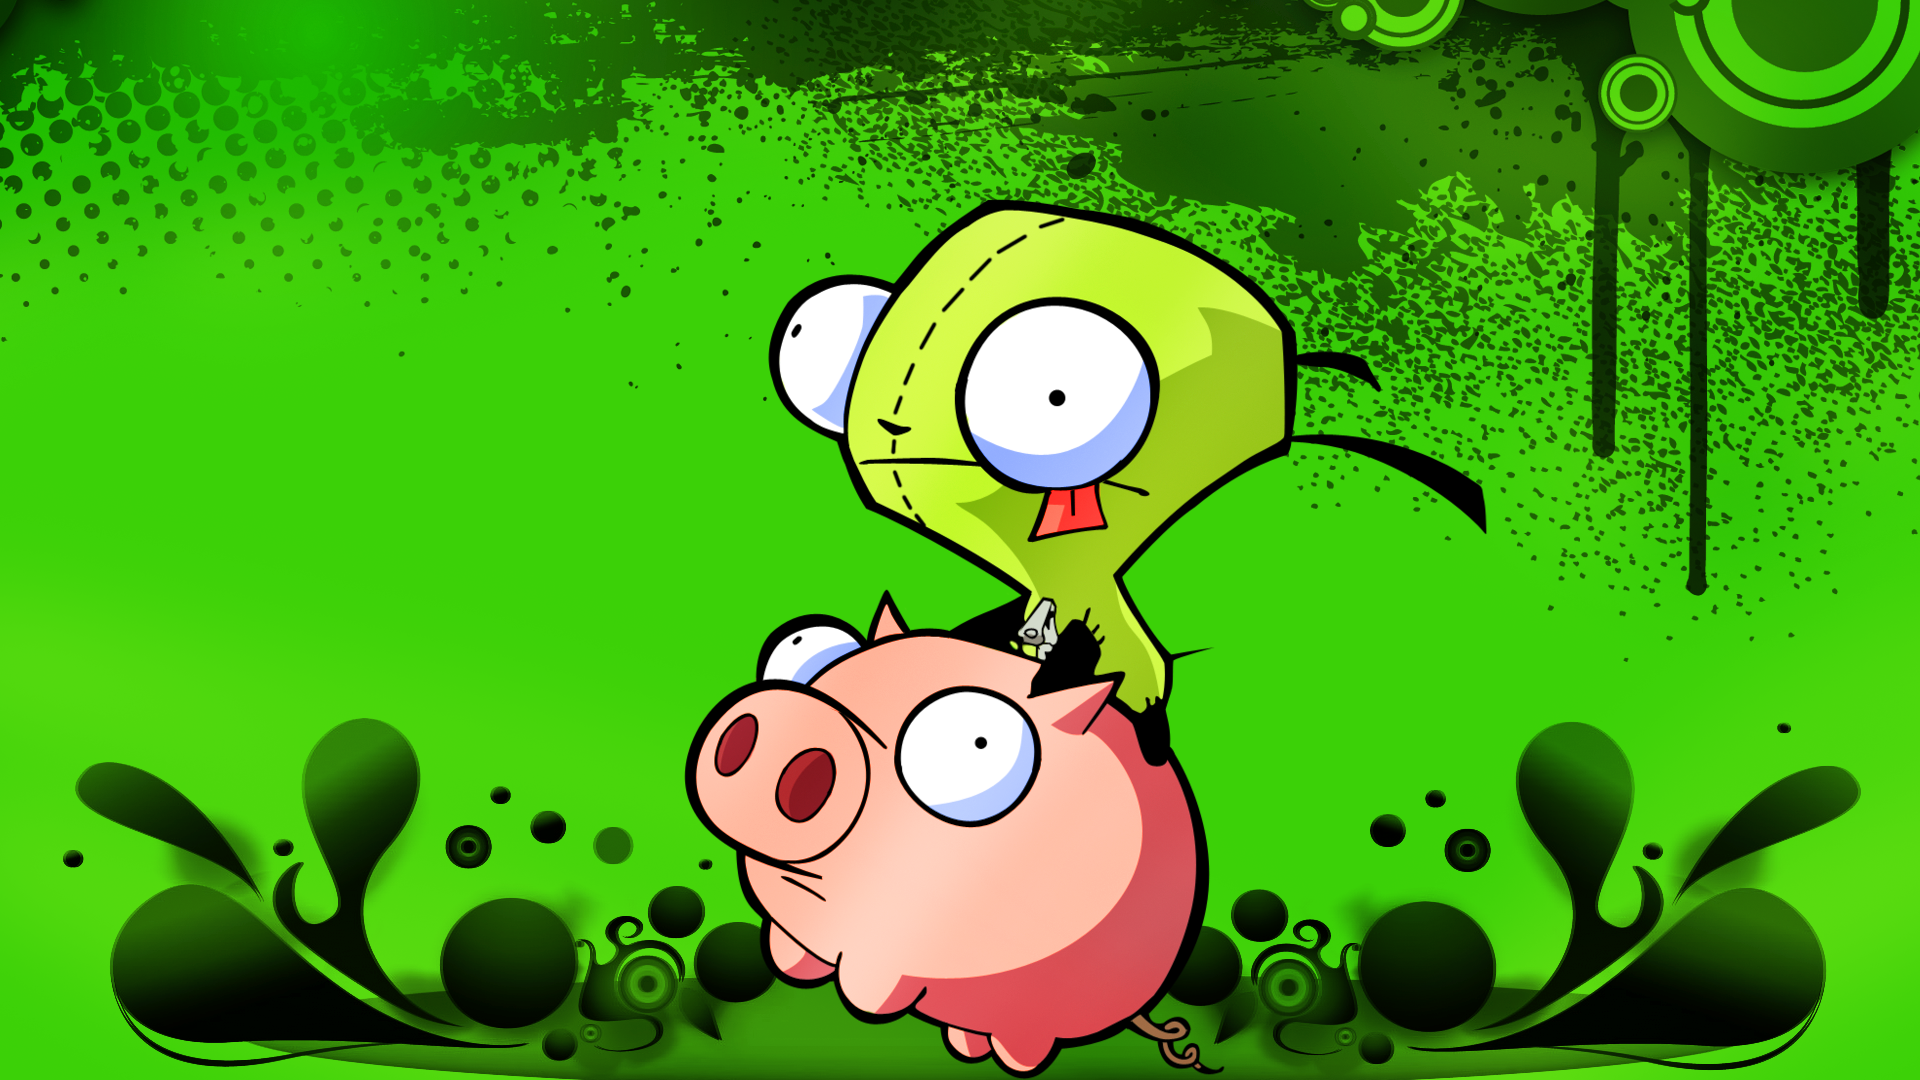 gir and pig by epidemicpandmonia on deviantart